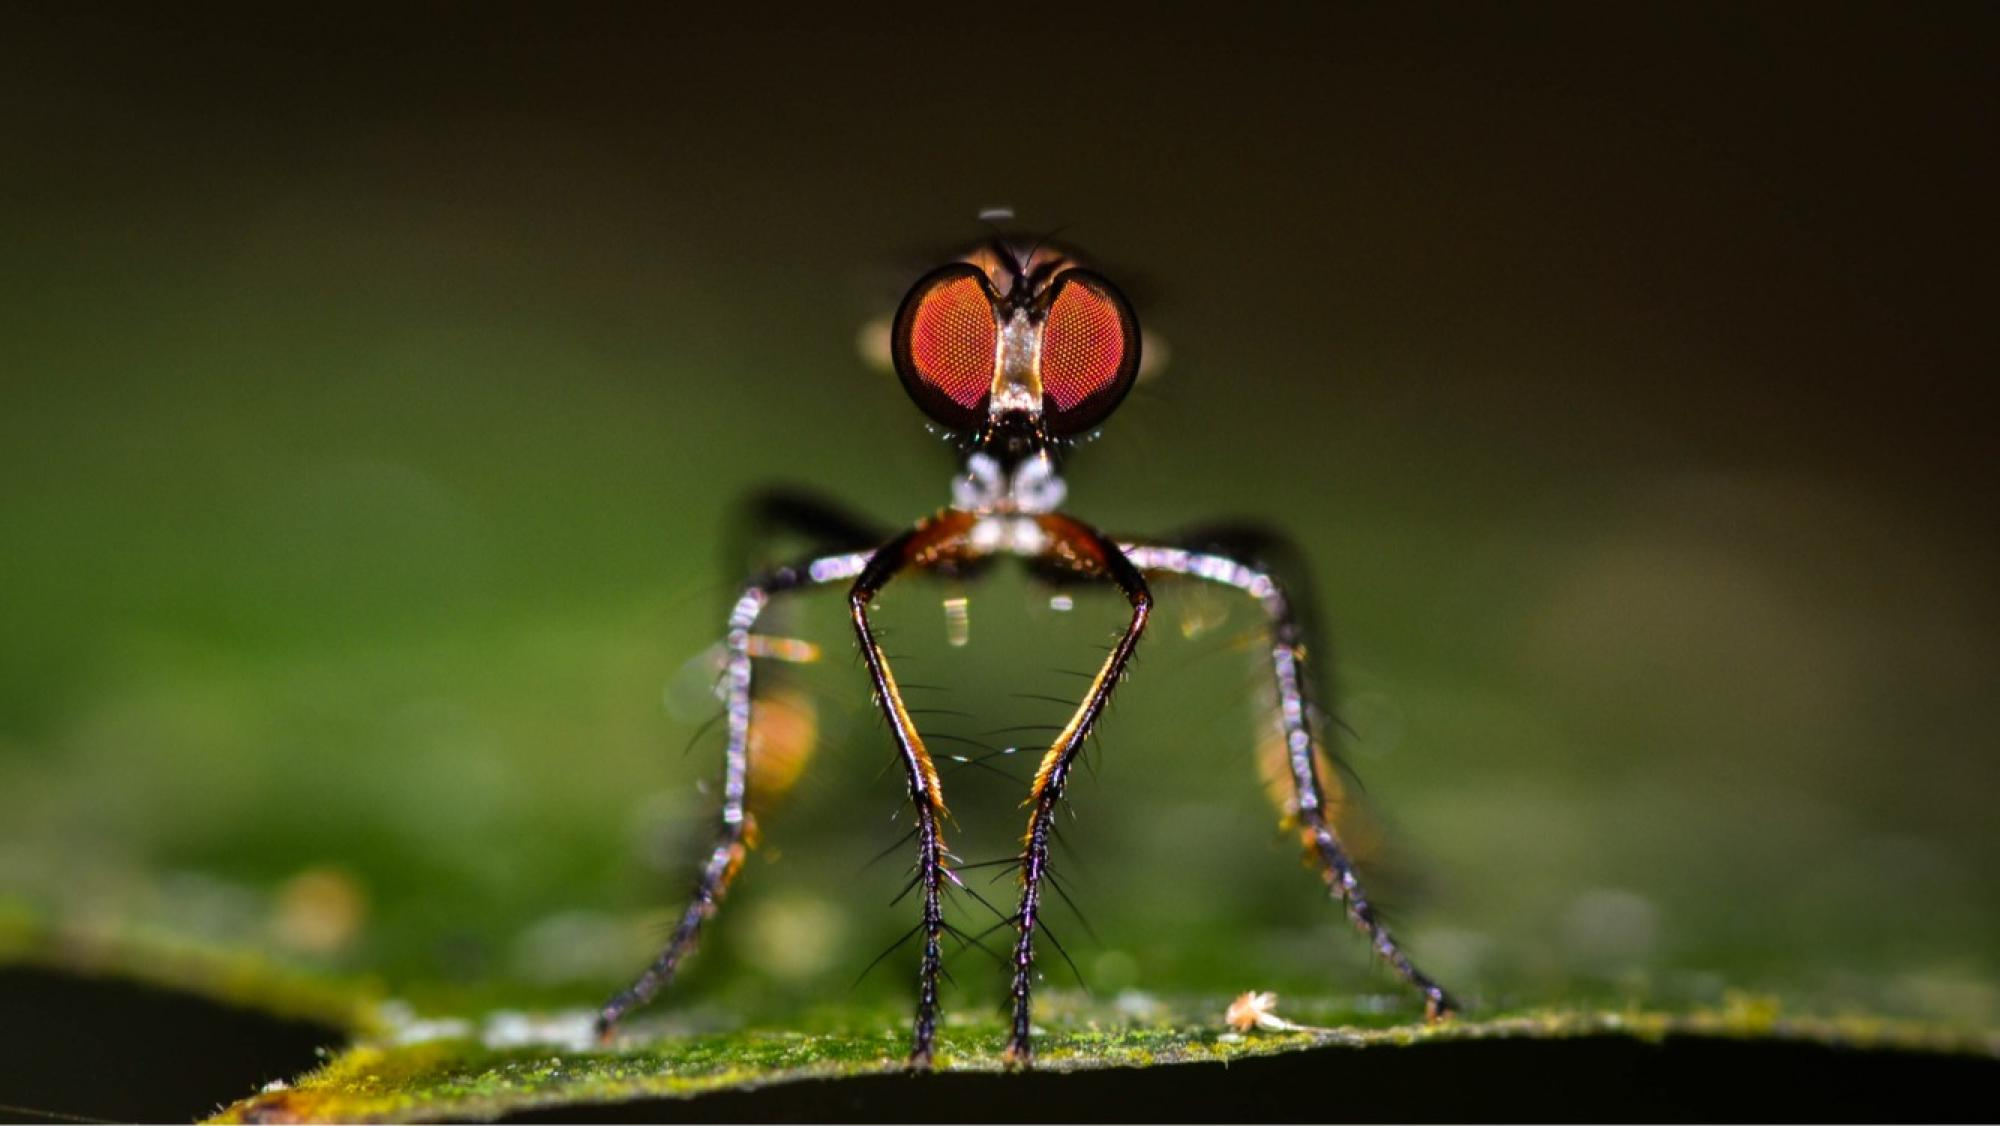 Assassin flies  are aggressive predators that feed on a variety of insects.